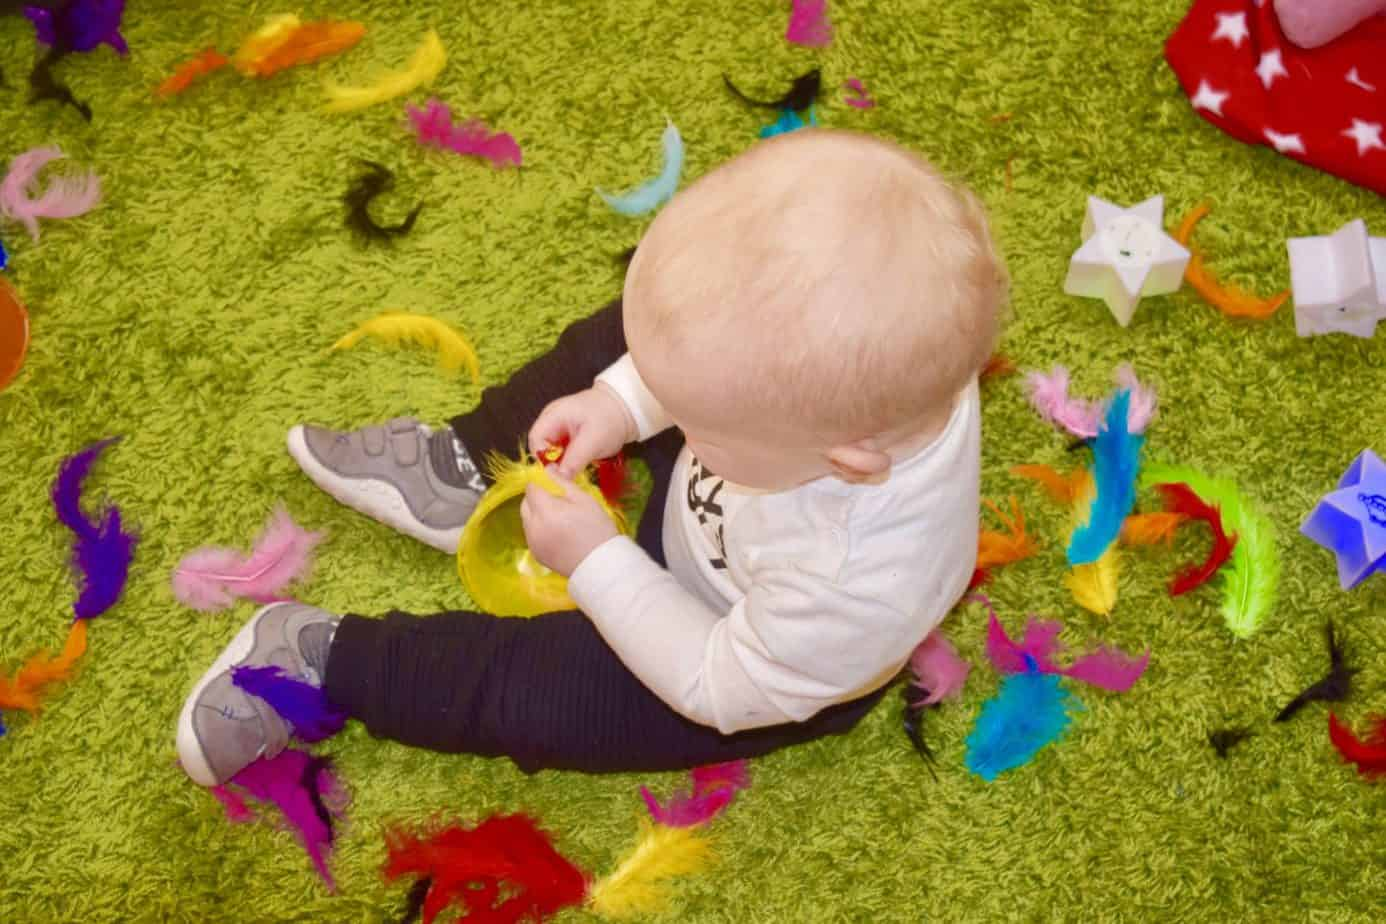 Baby K surrounded by colourful feathers during our time at hart beeps